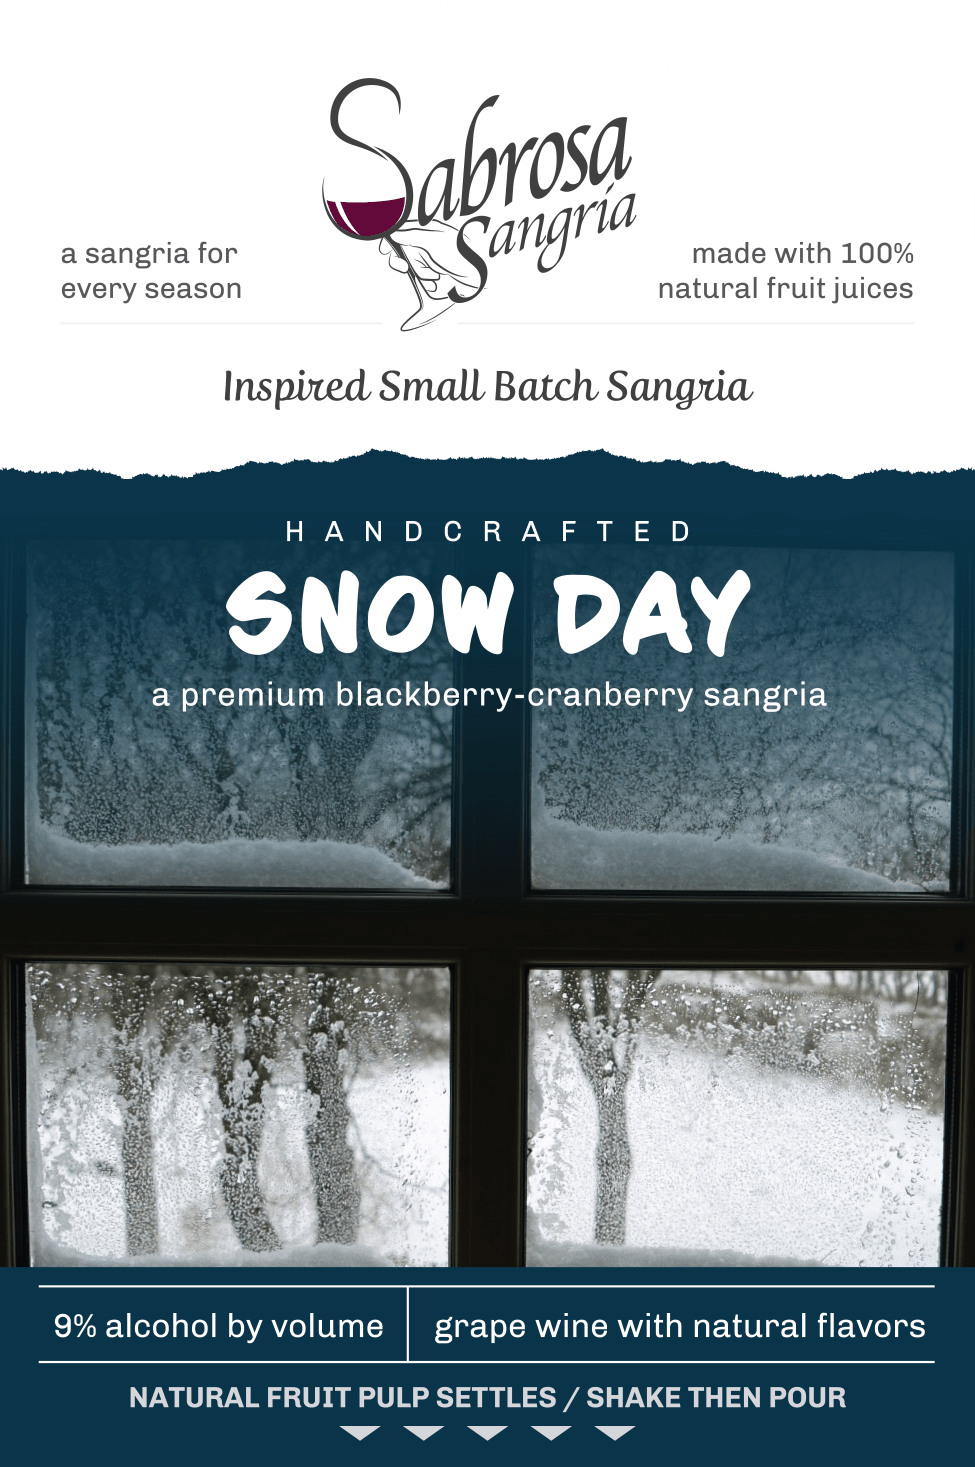 Snow Day Sangria — A Blackberry/Cranberry Sangria